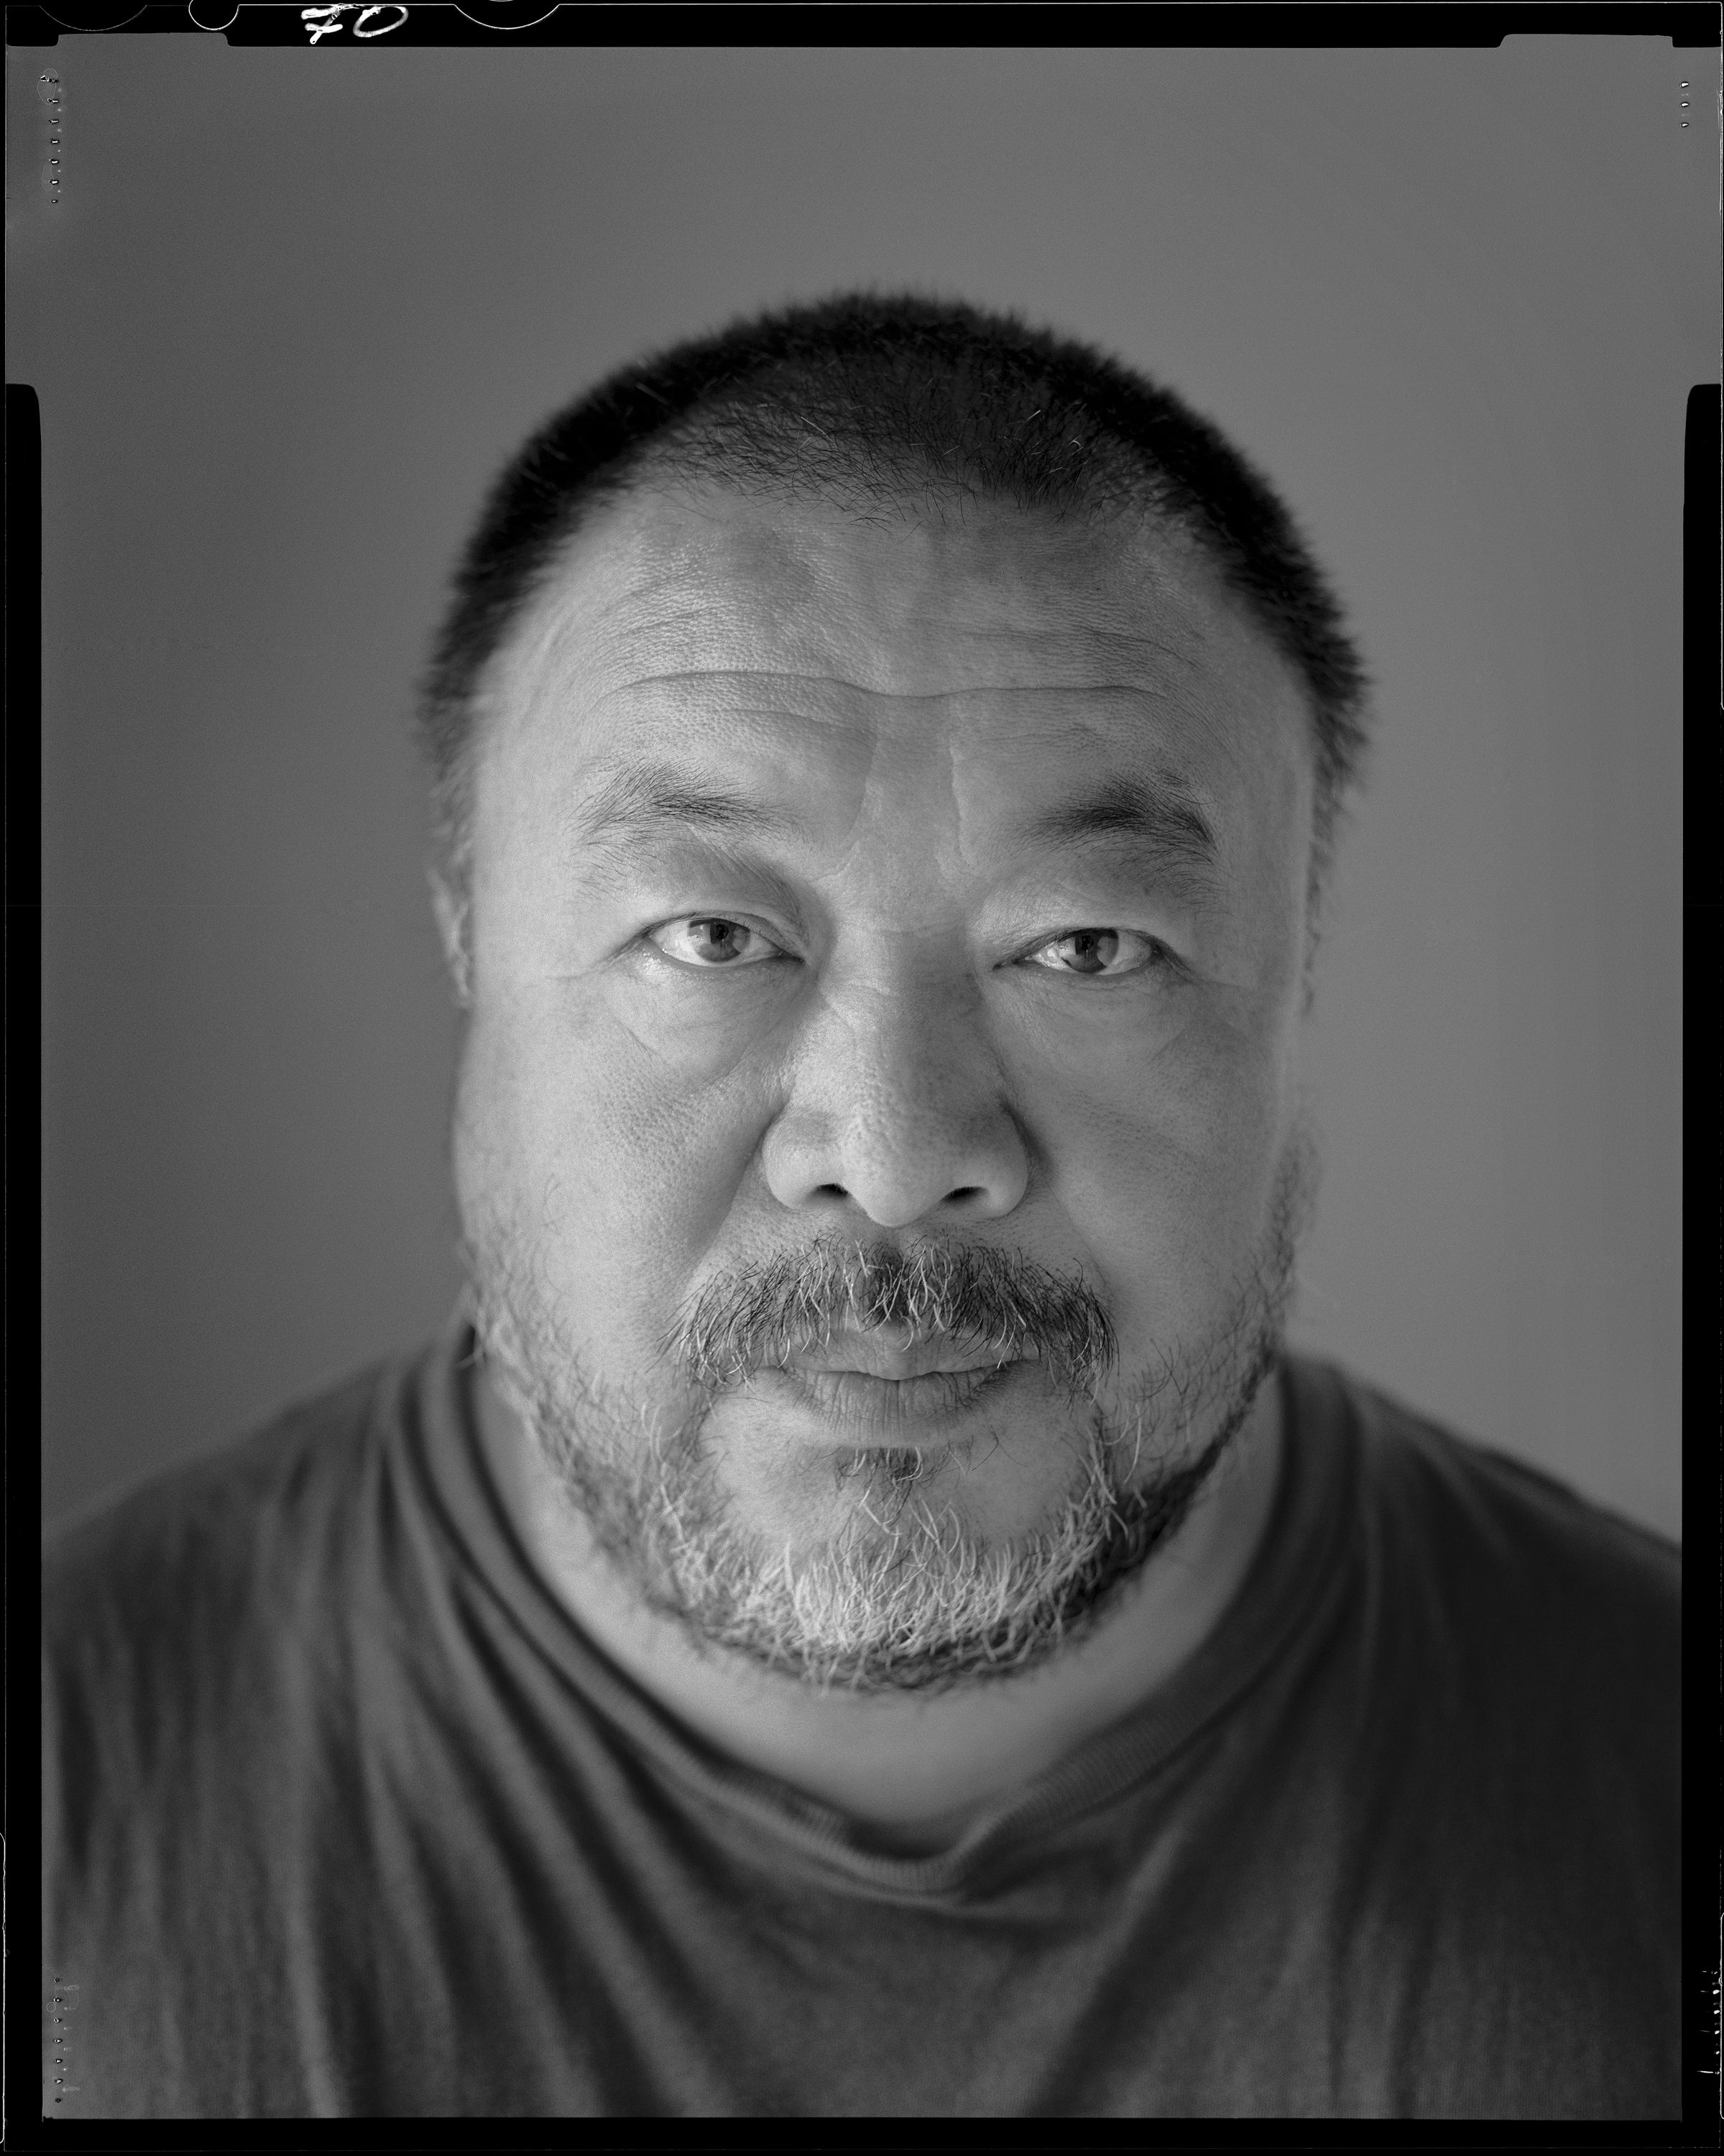 Ai Weiwei photographed by Grant Delin in Beijing for Interview, May 2013.